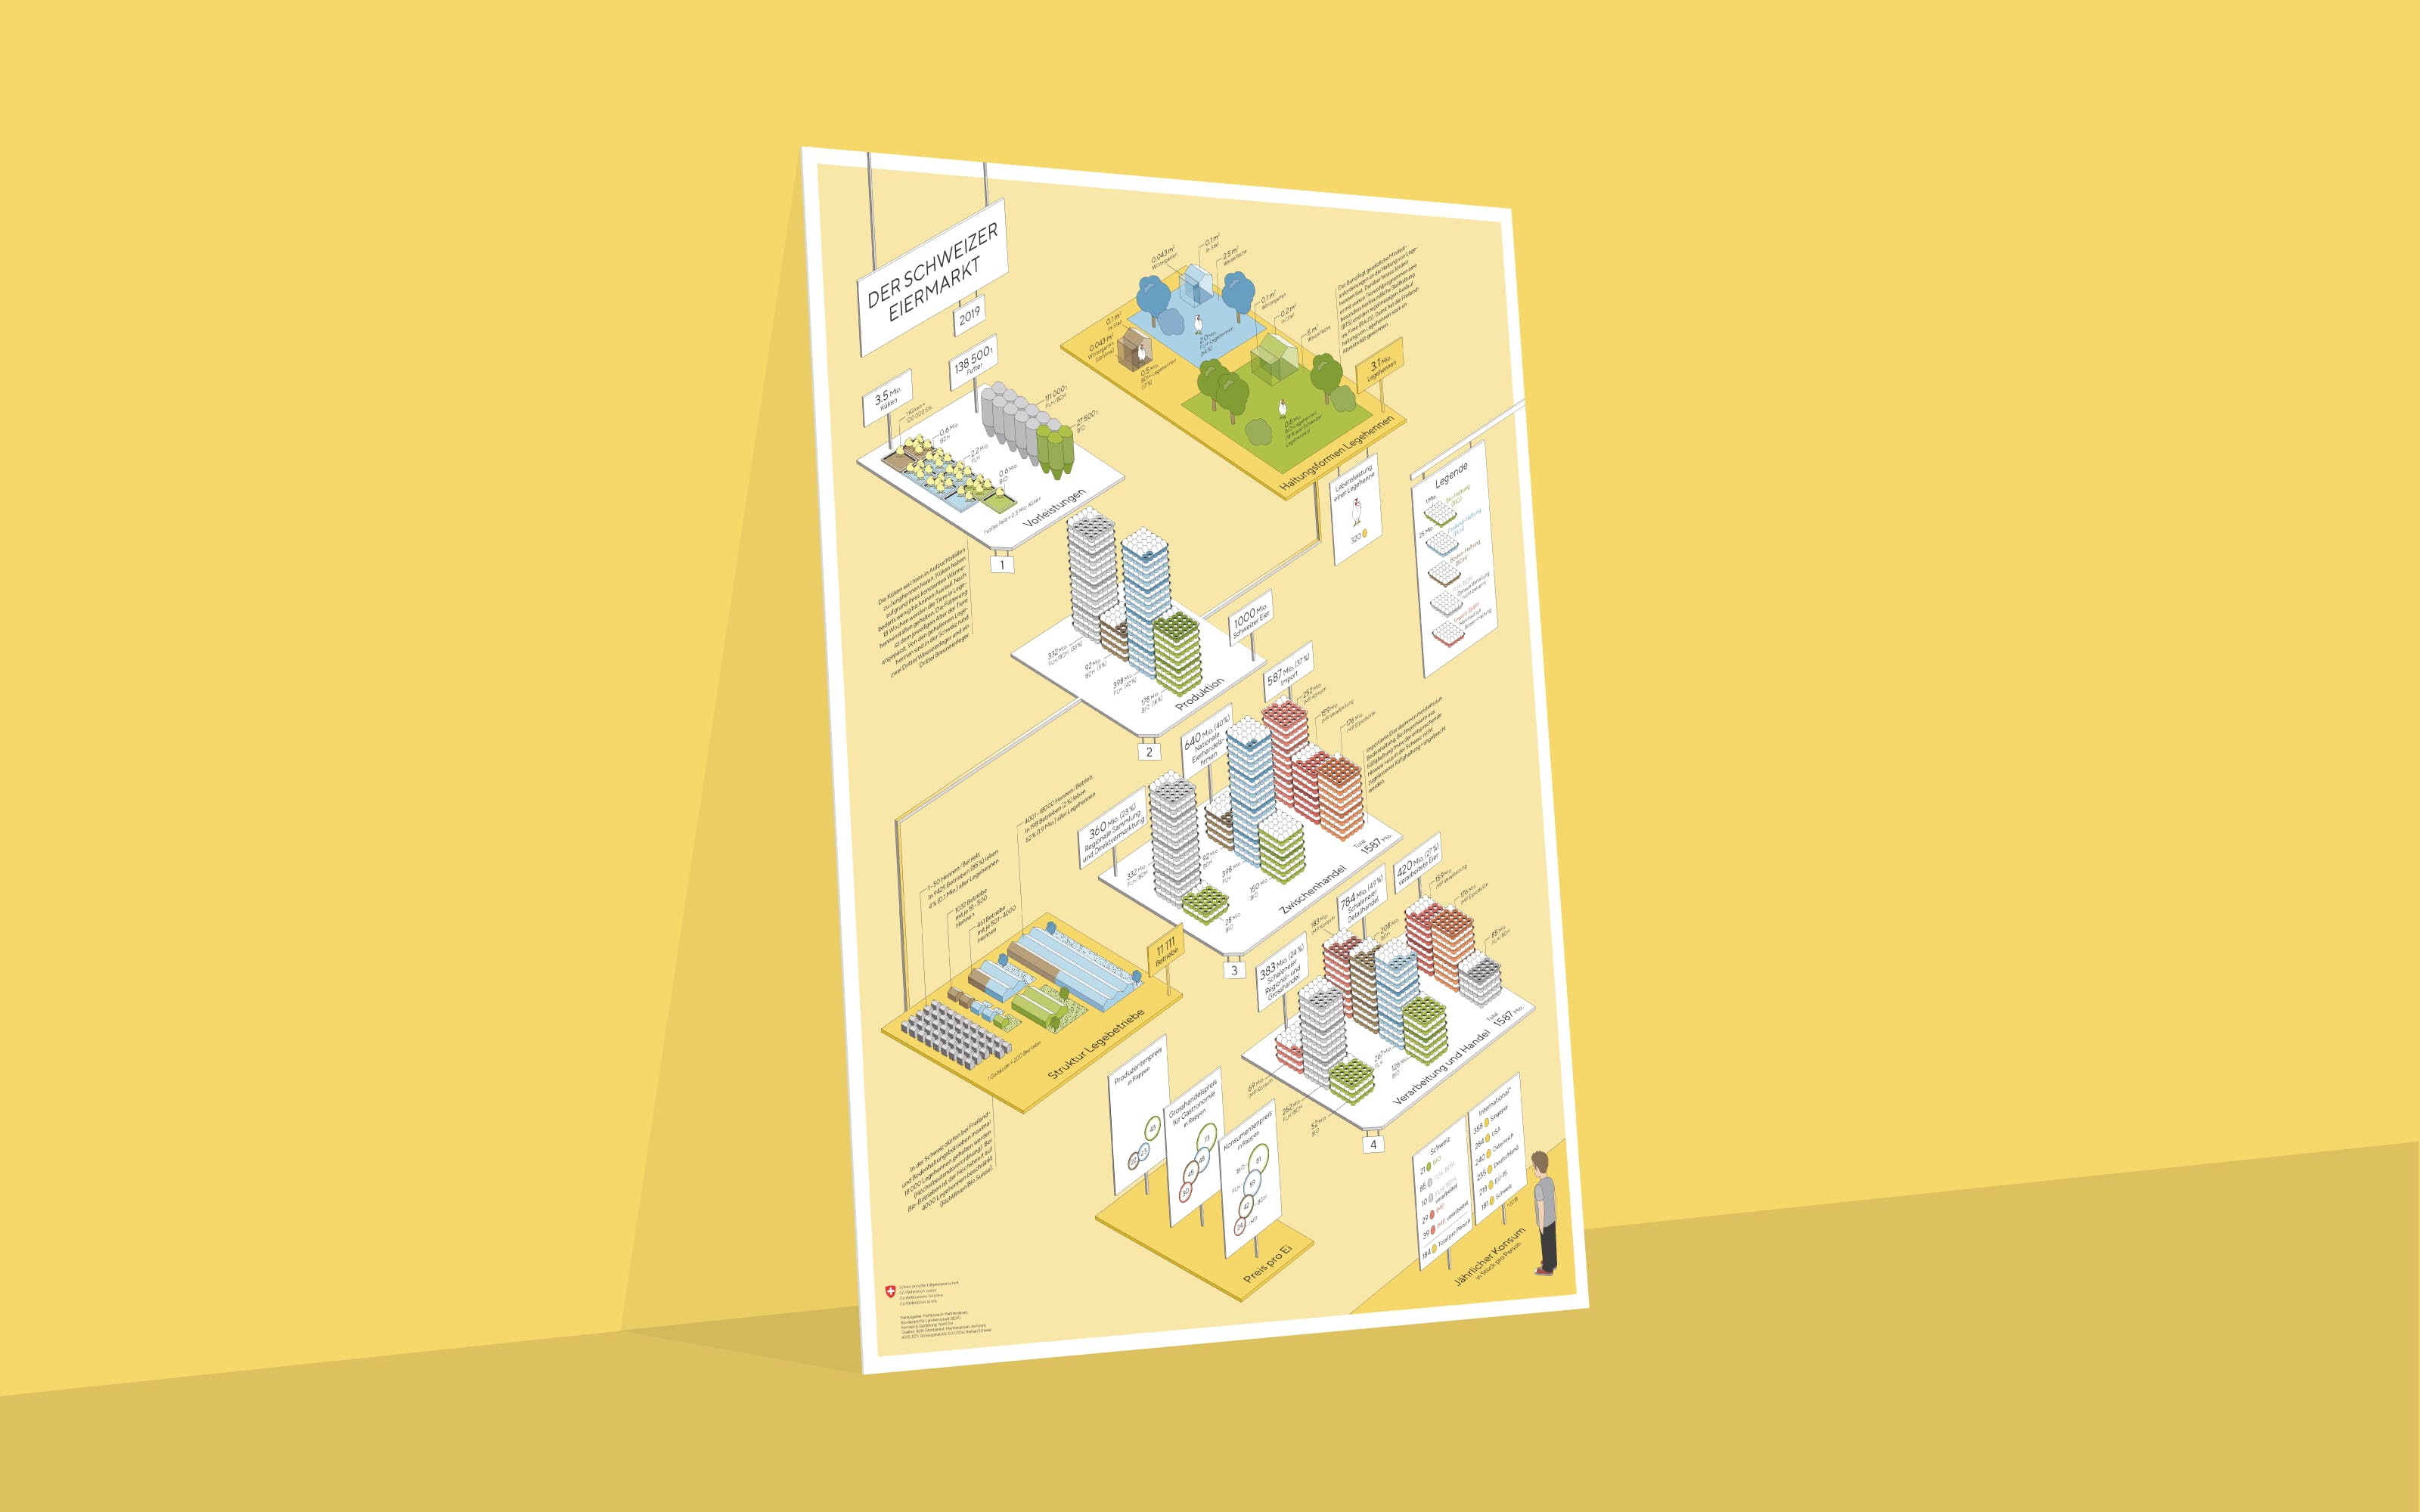 Superdot Studios Isometric Infographic about Swiss Egg Market for Swiss Federal Office for Agriculture FOAG, 2017